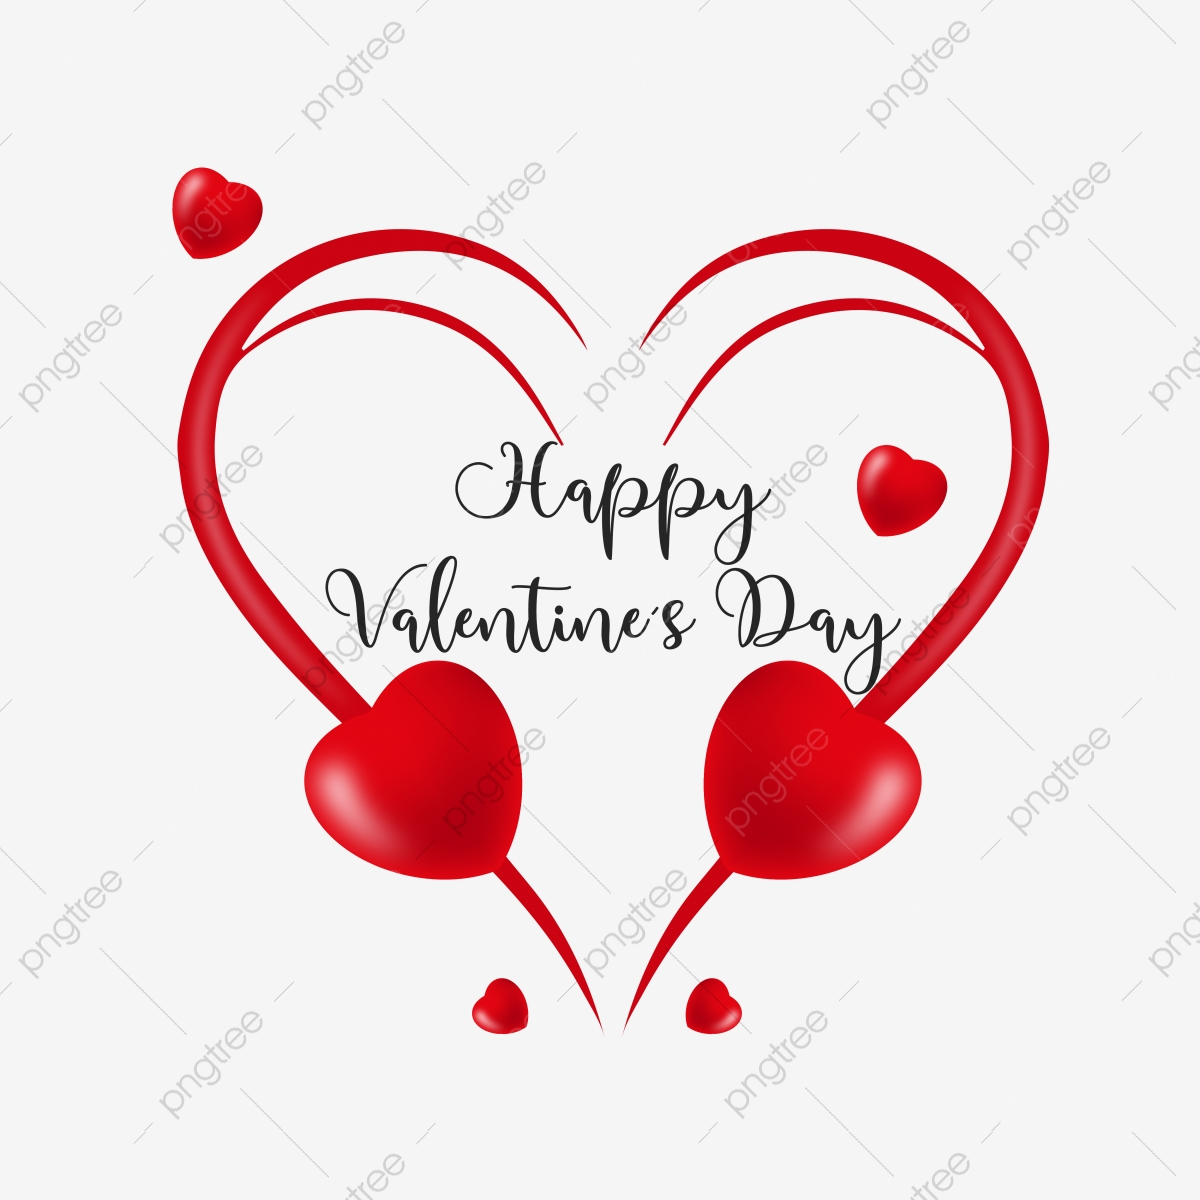 Happy Valentines Day Clipart Png Images Vector And Psd Files Free Download On Pngtree